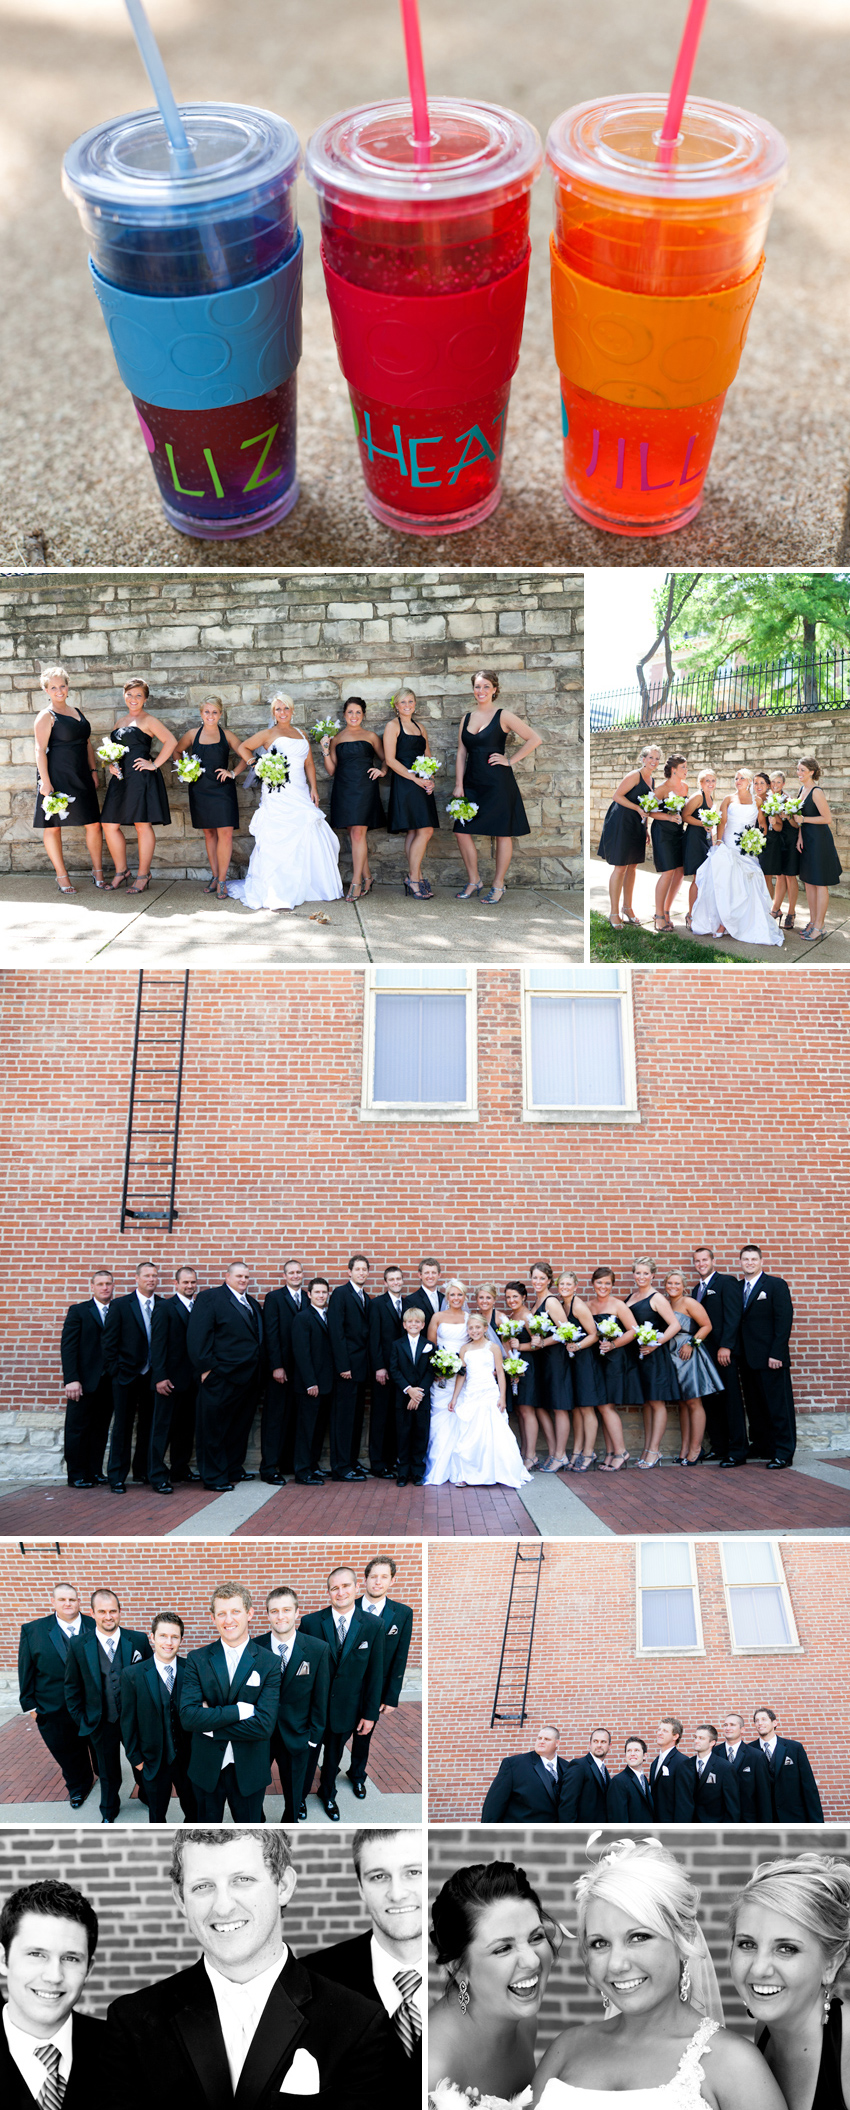 Kansas City wedding photographer Darbi G. Photography